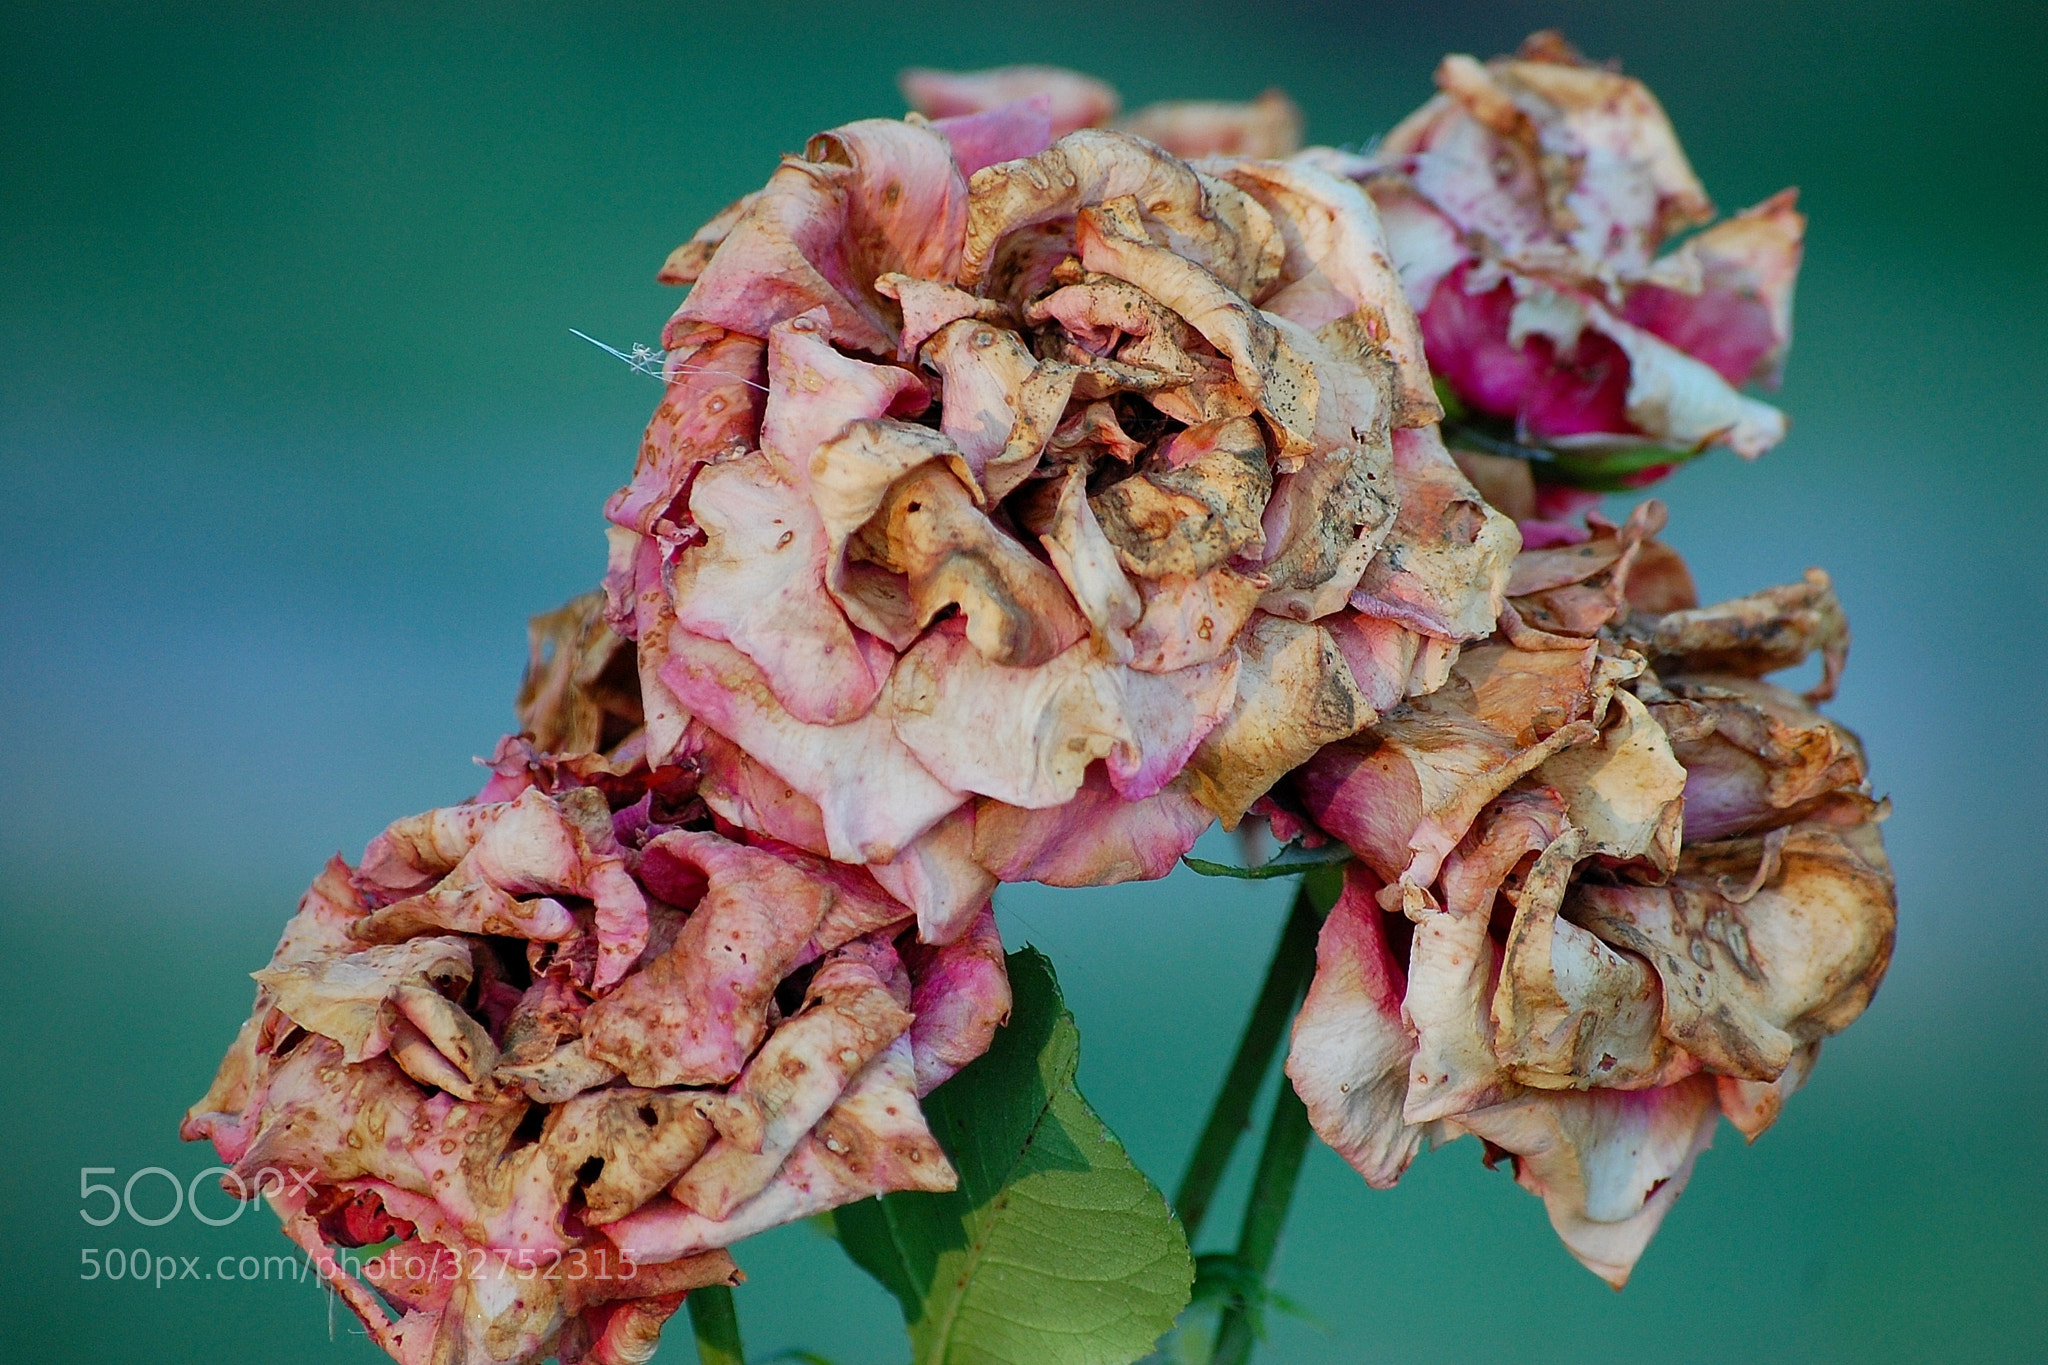 Photograph roses are dying by Andrea Macherelli Bianchini on 500px